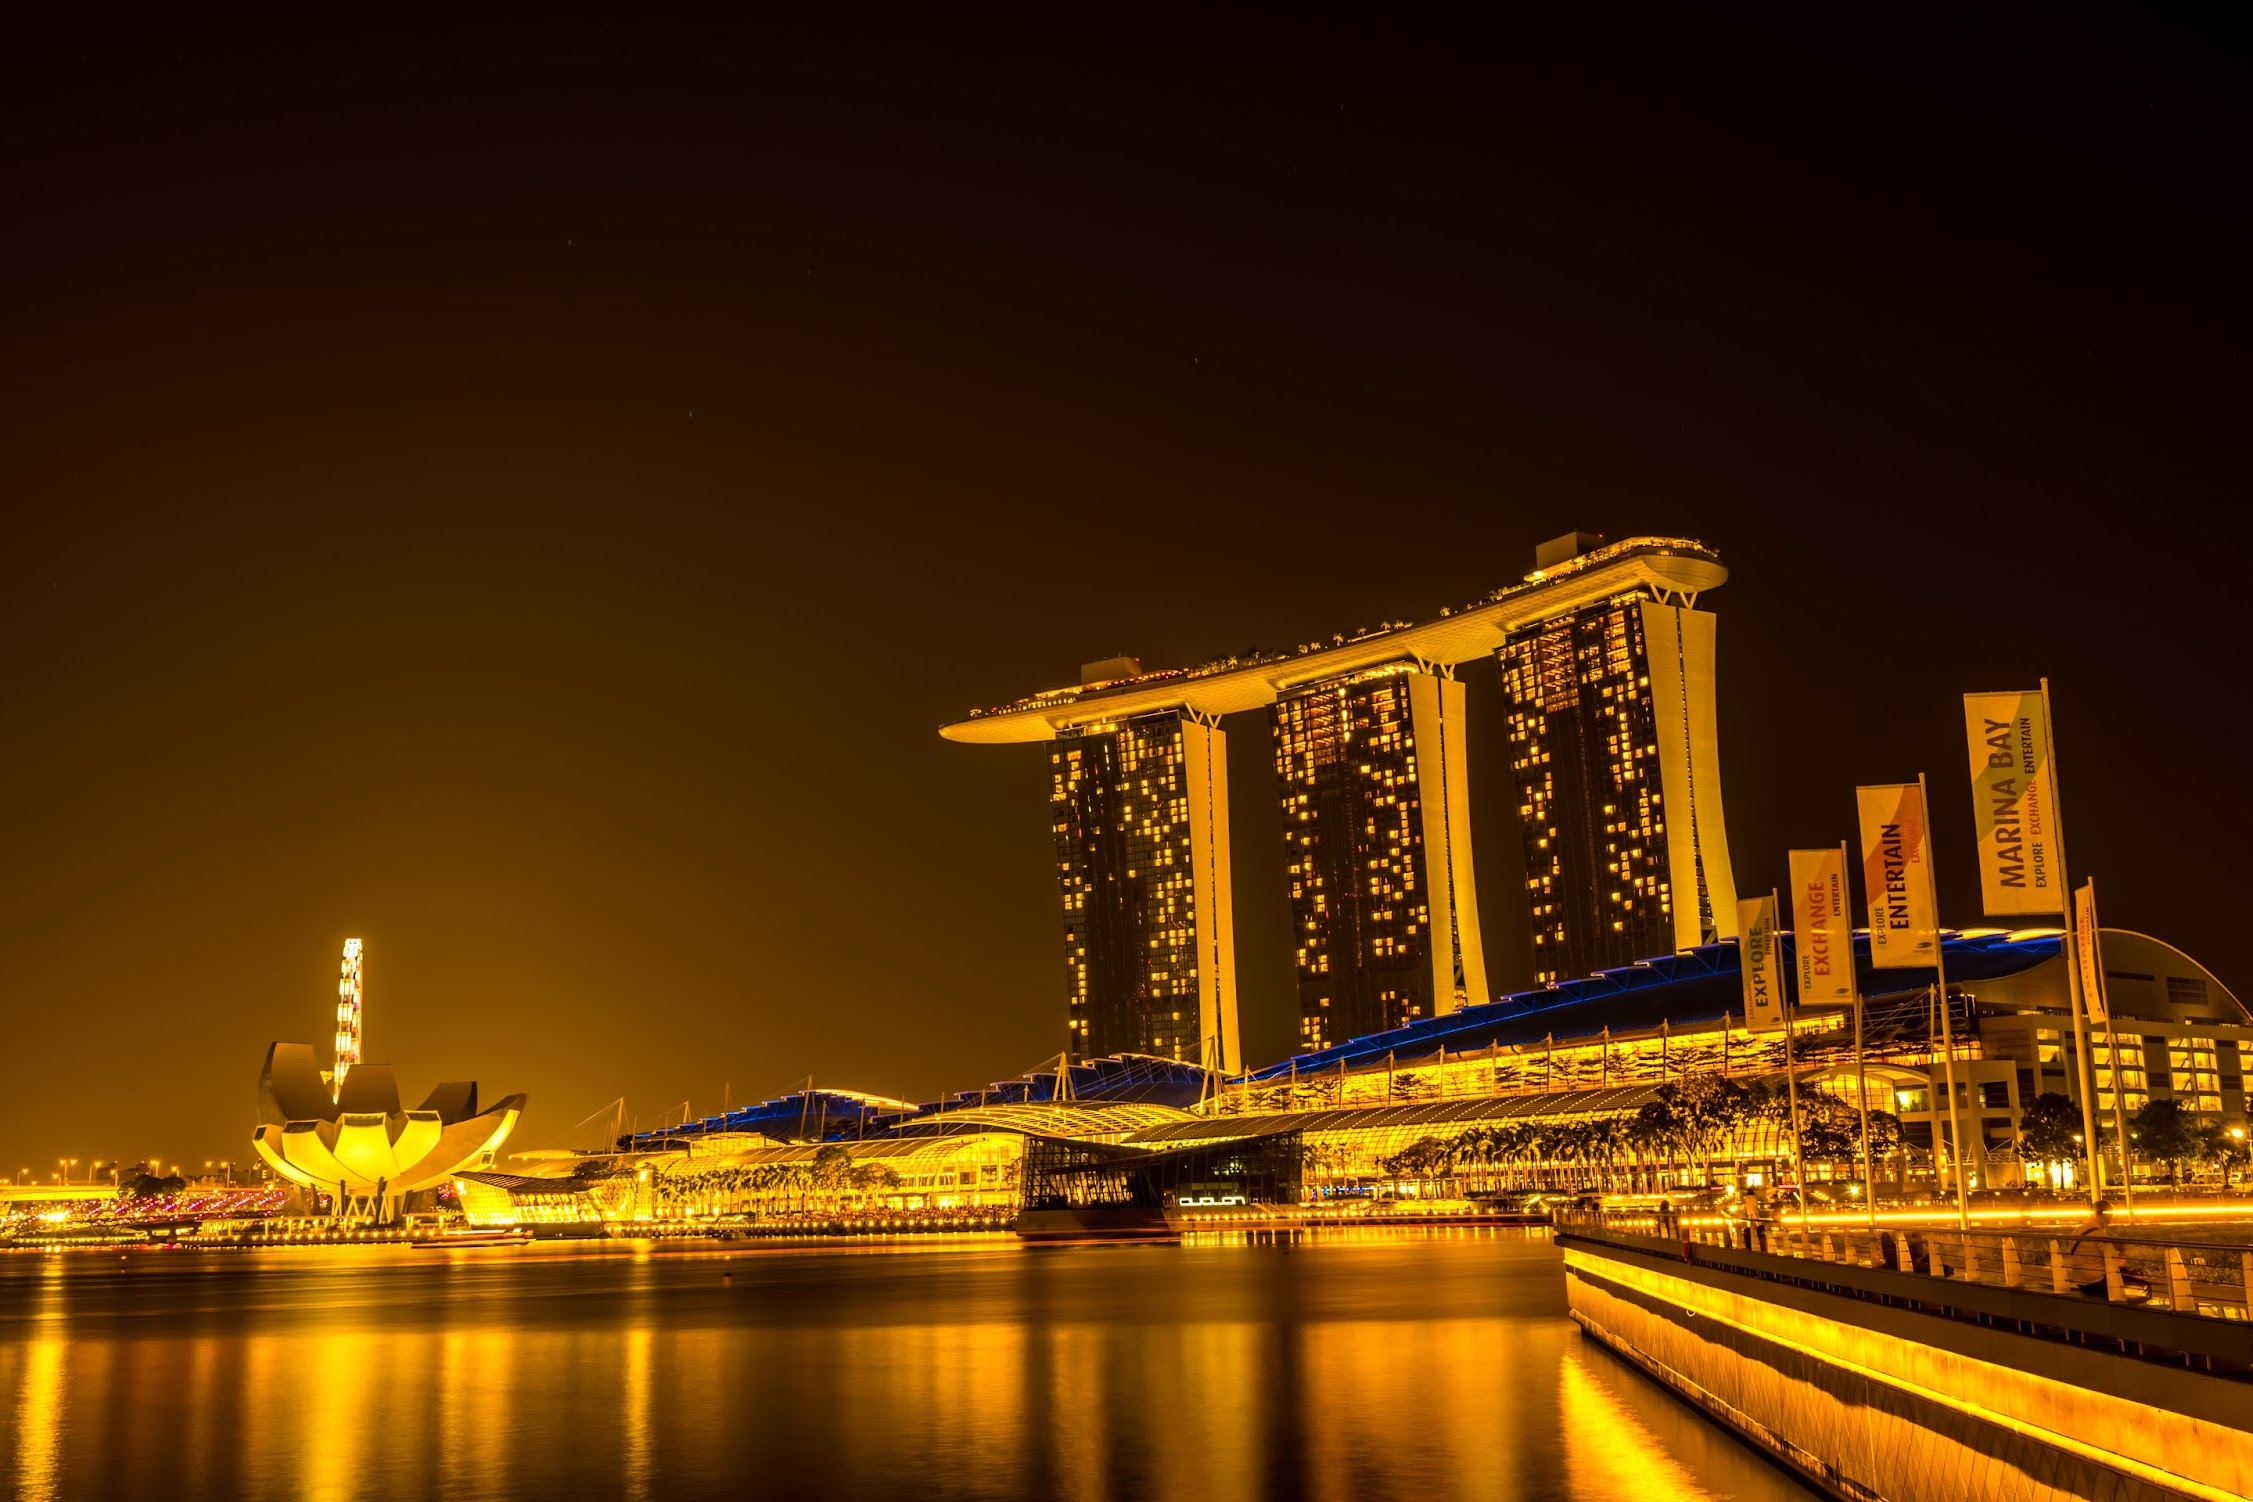 Singapore Marina Bay Sands night view8